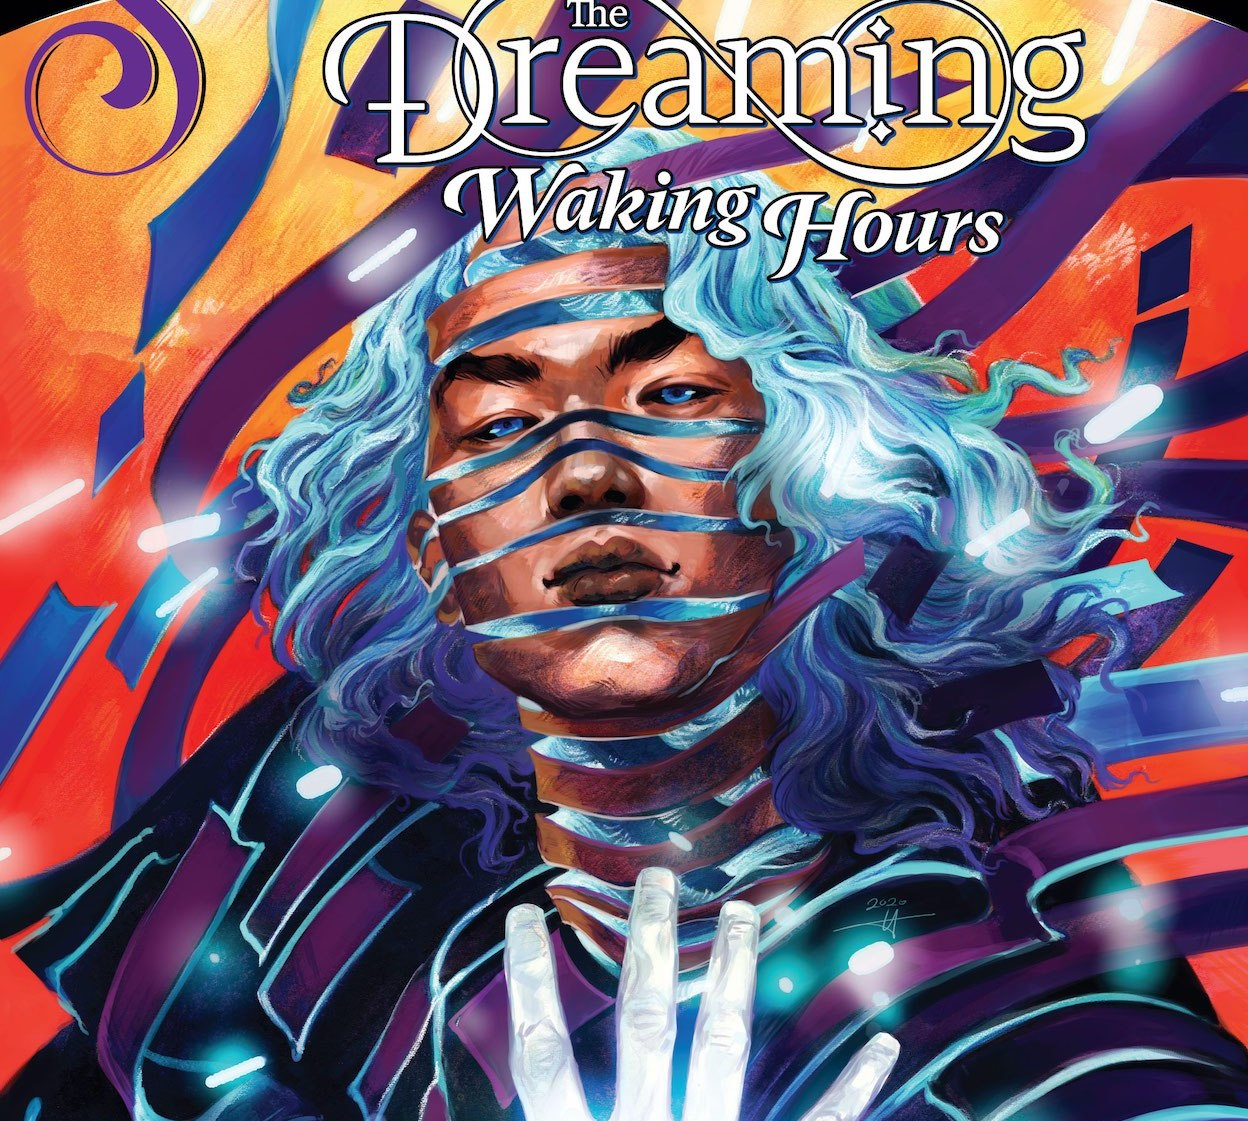 'The Dreaming: Waking Hours' #5 review